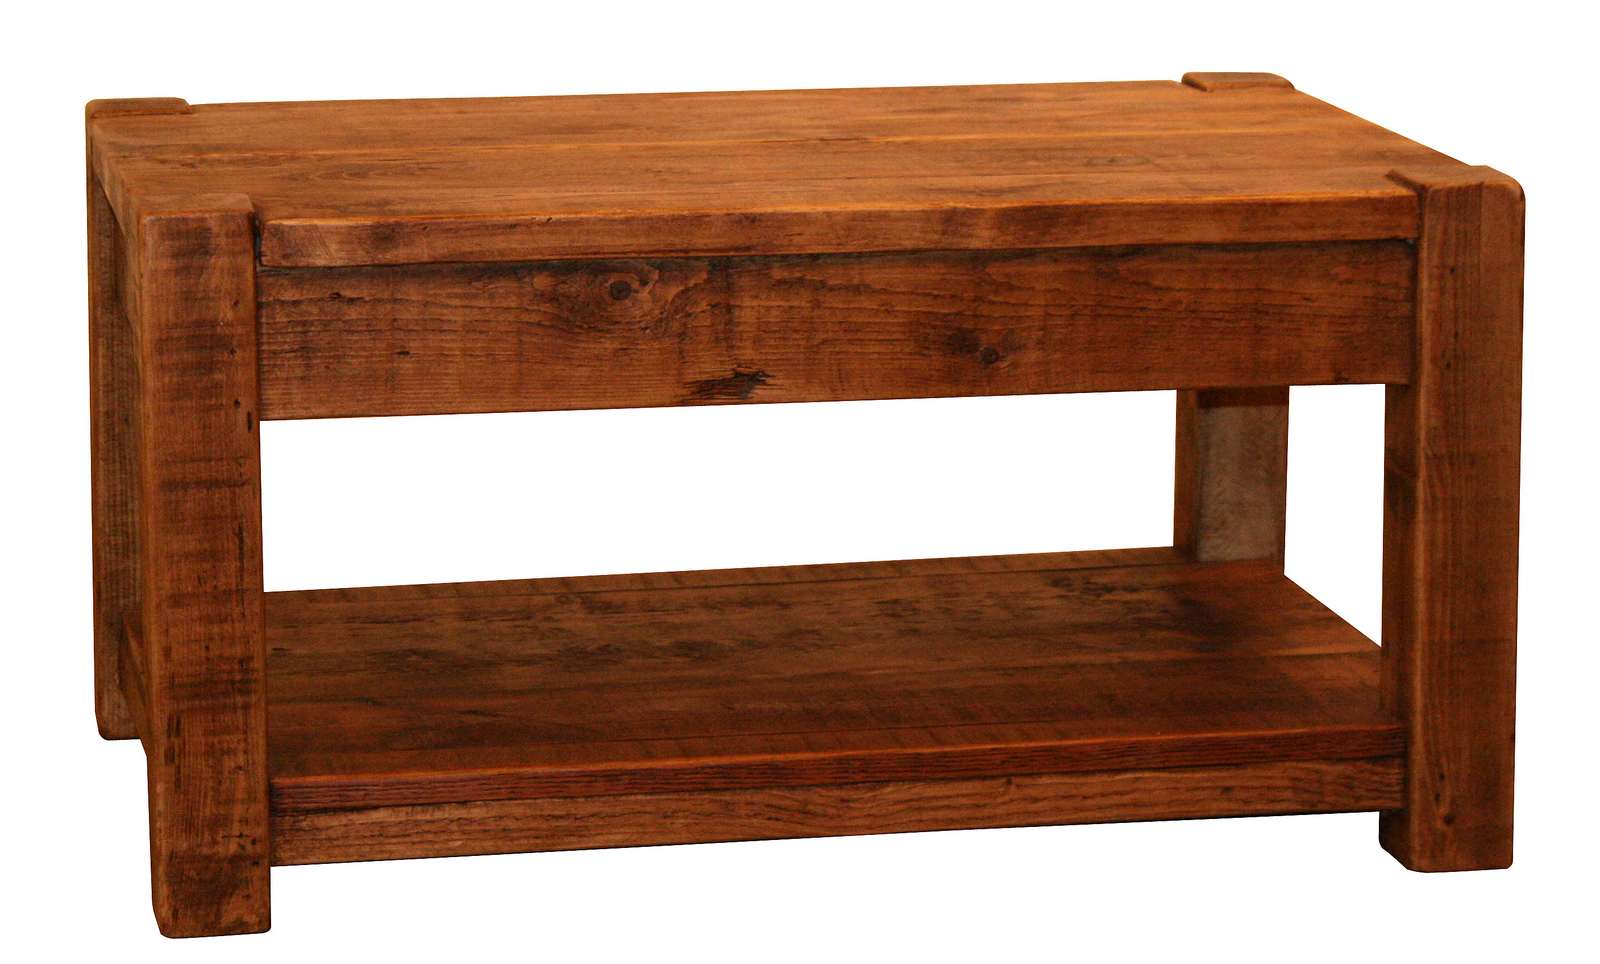 Cargo Reclaimed Coffee Table Vintage & Reclaimed